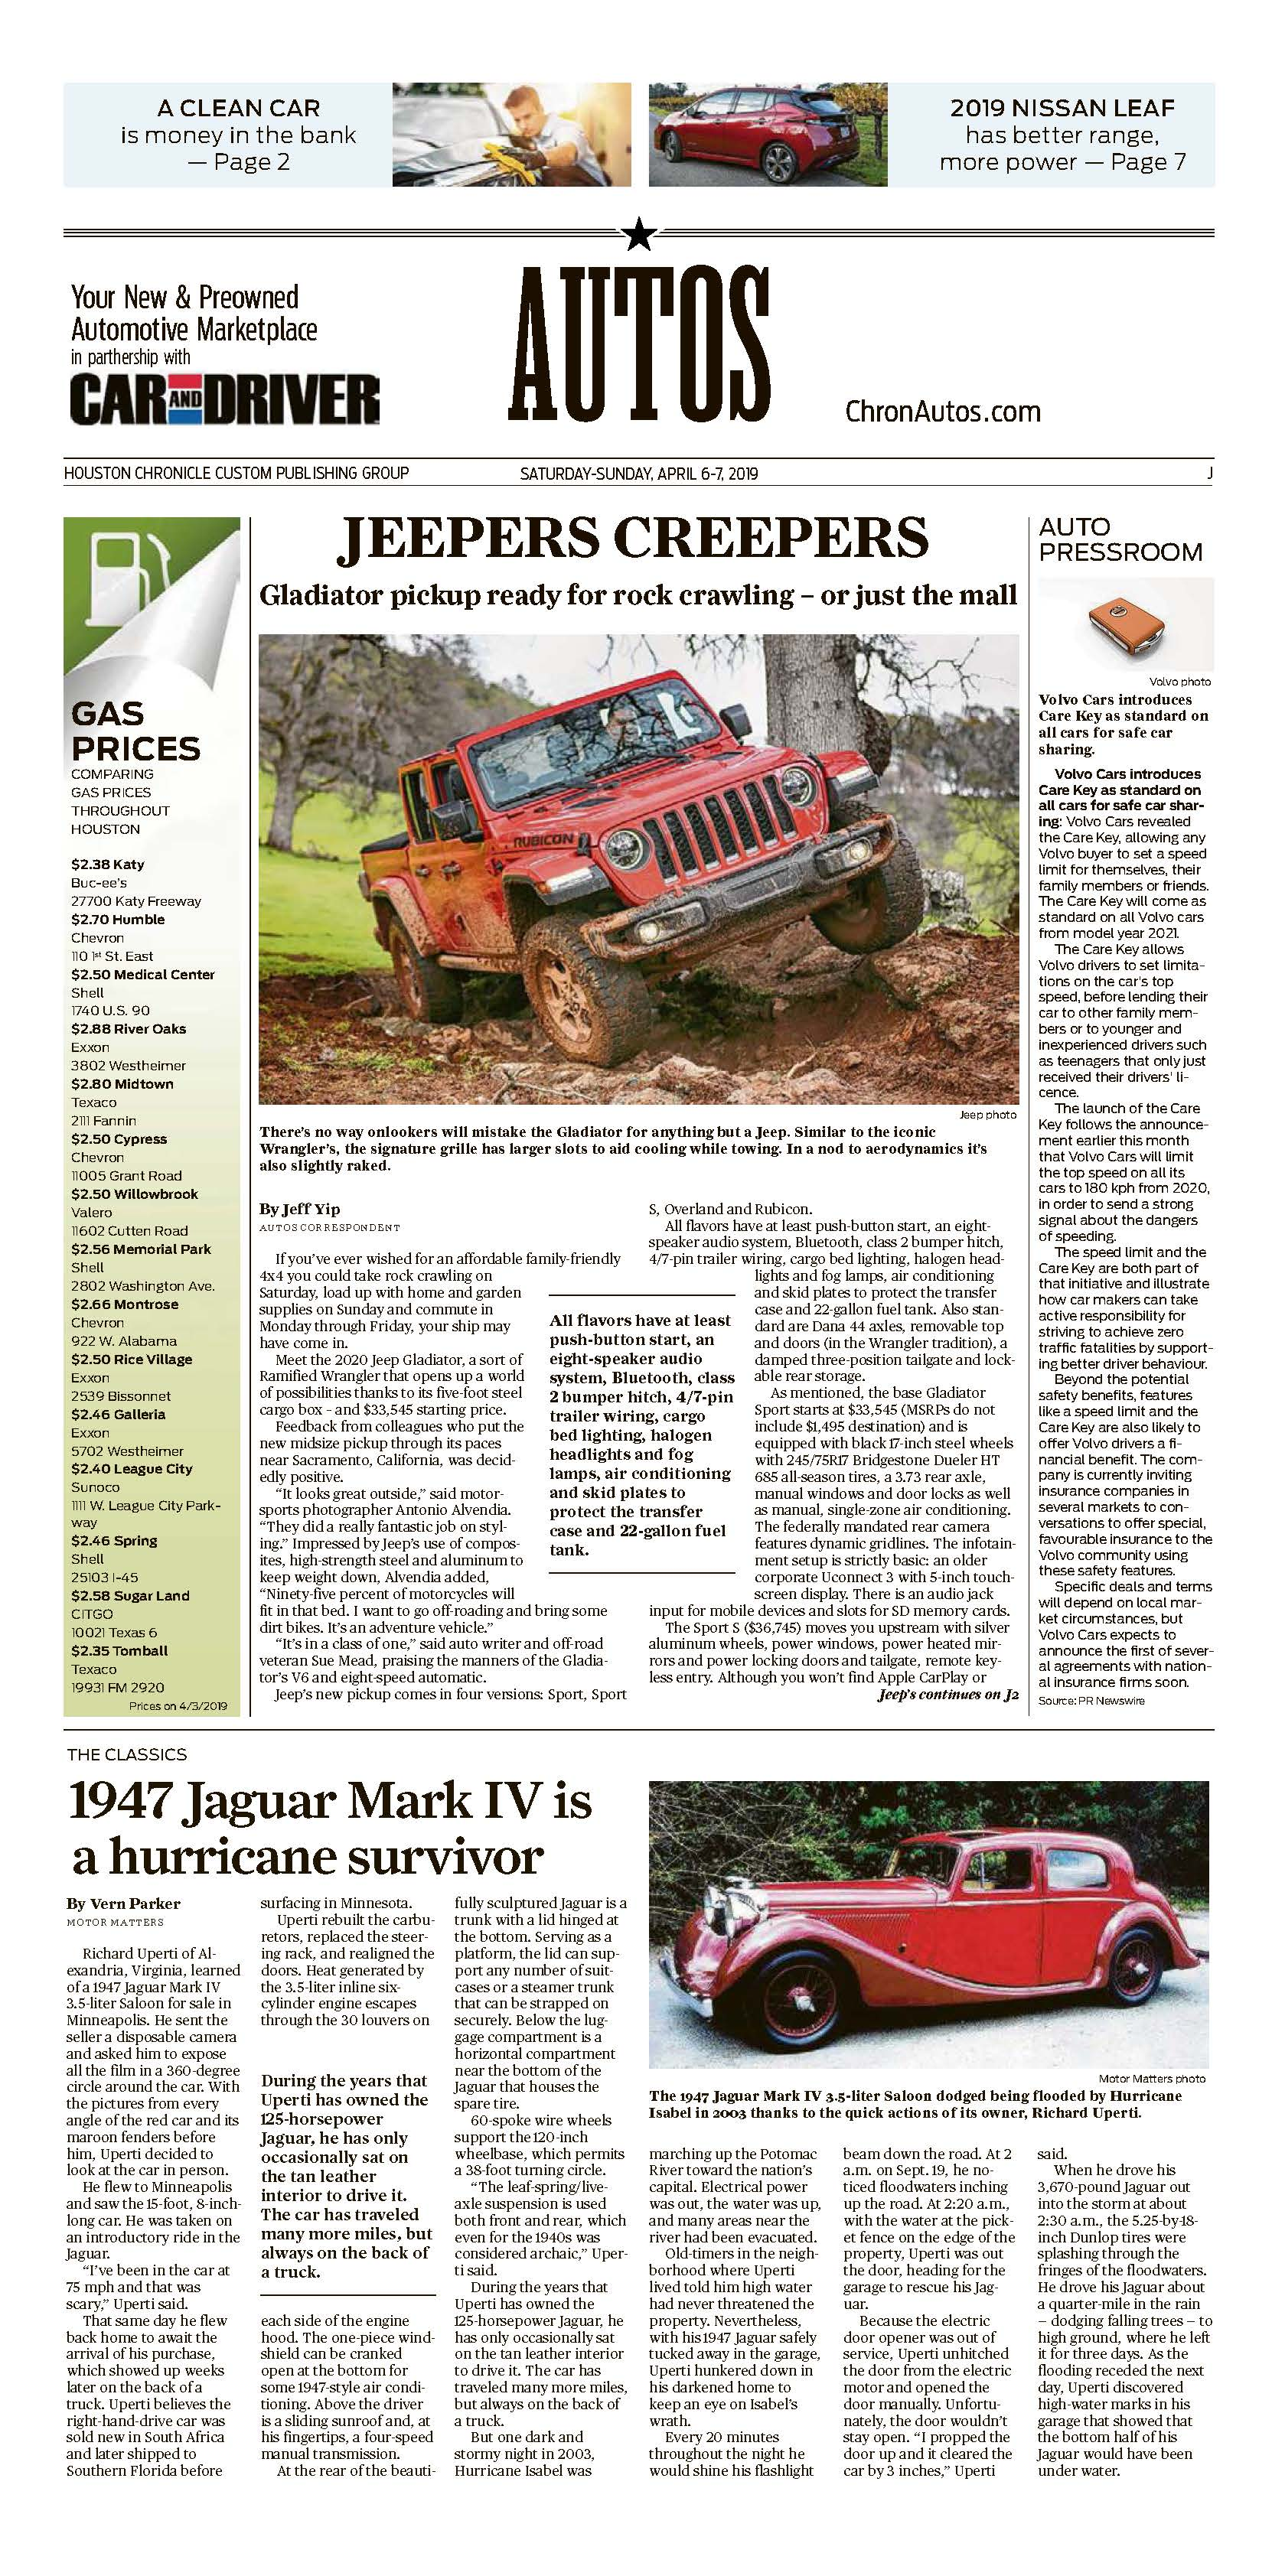 Houston Chronicle Jeep Gladiator 2019_04_06 Antonio Alvendia P1.jpg